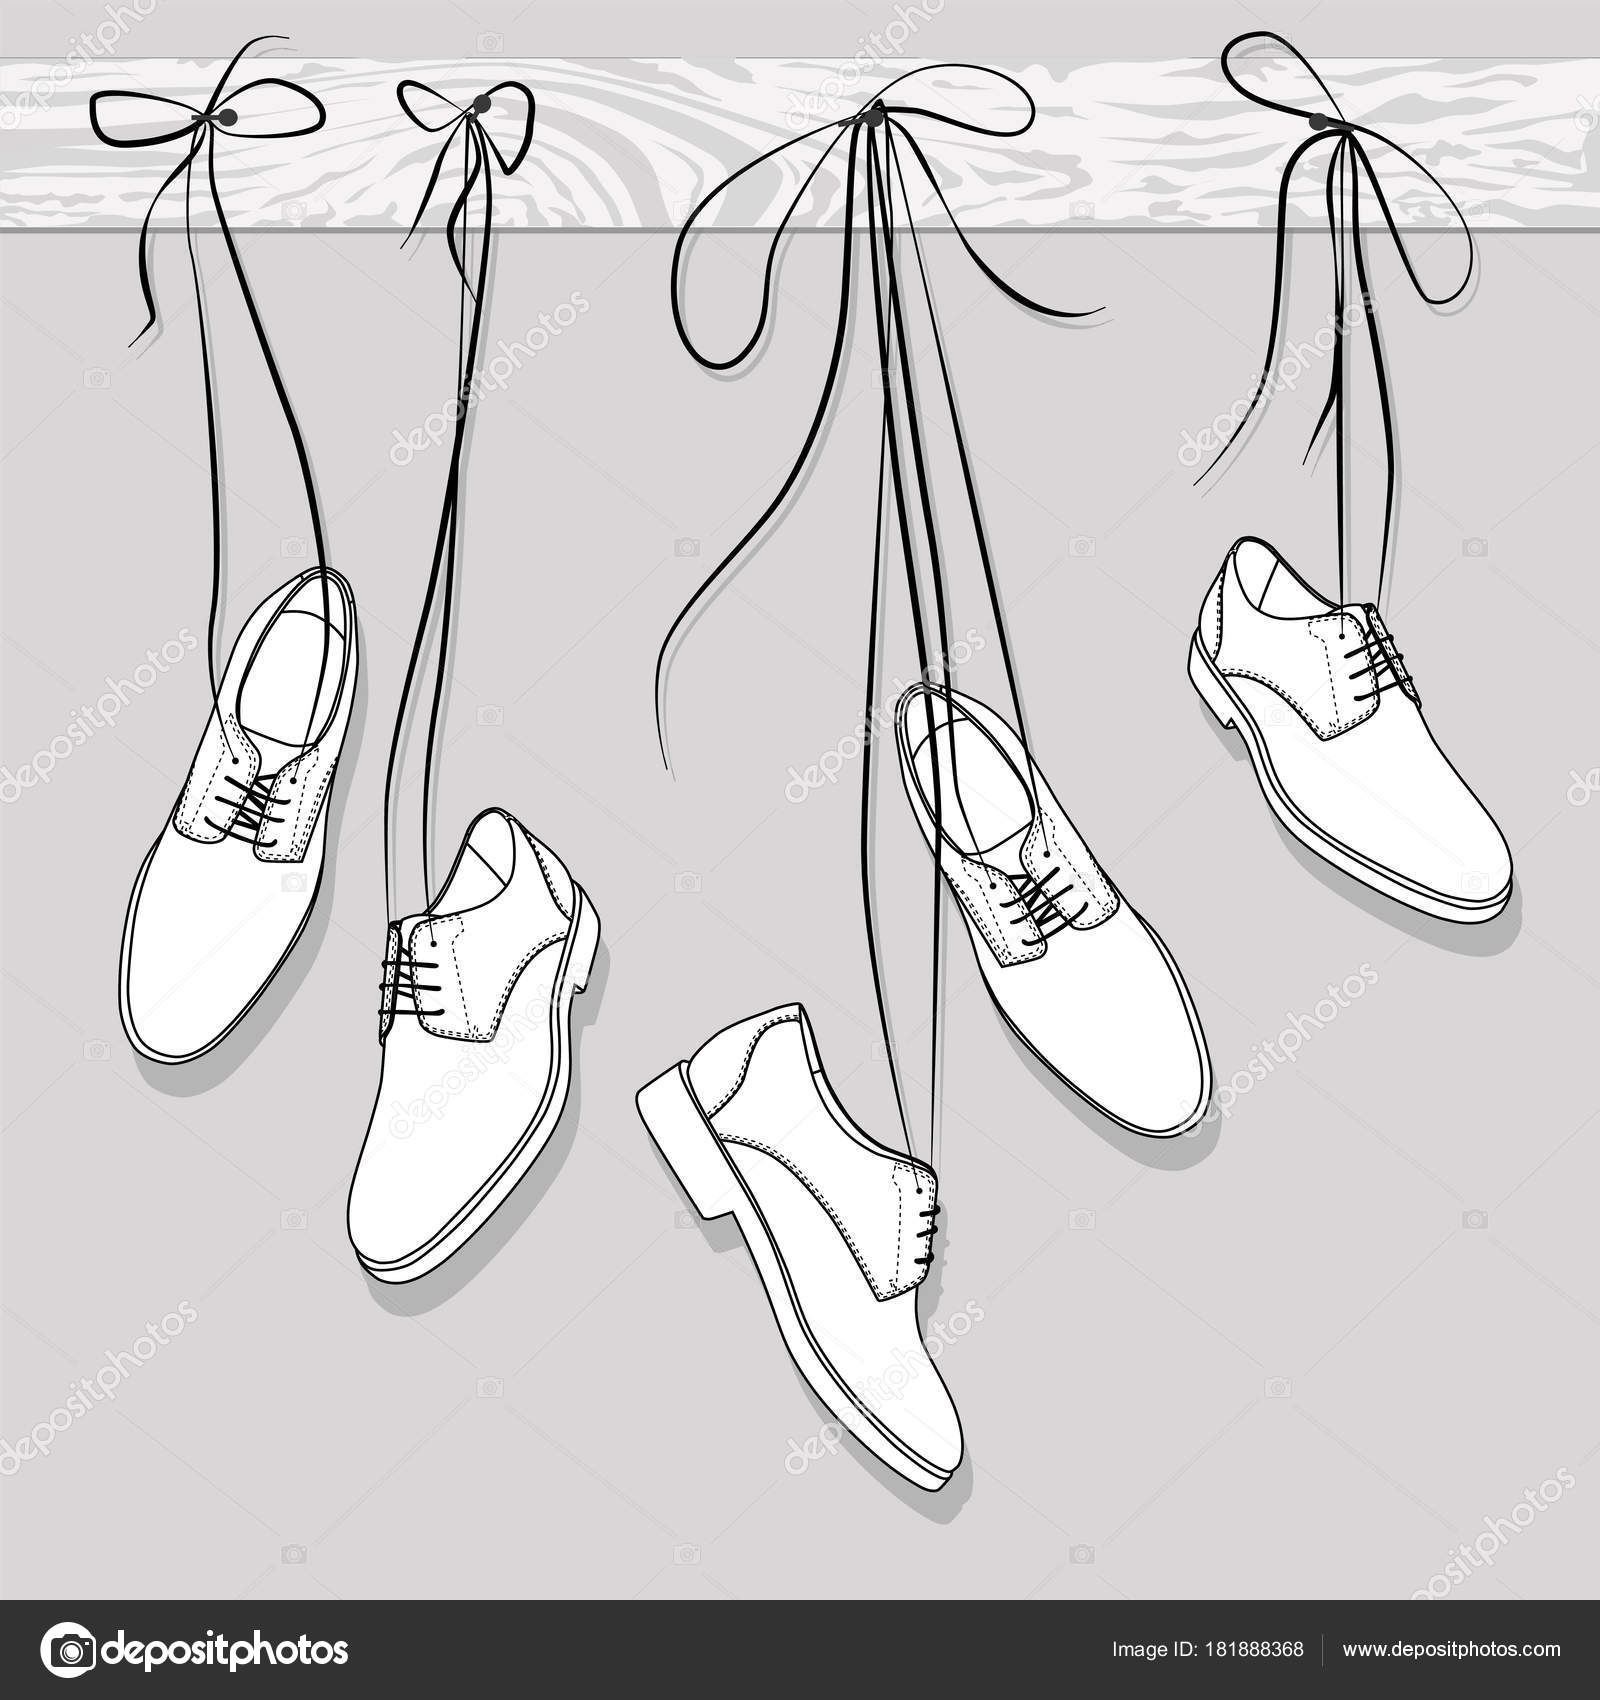 Shoes Hanging Laces Vector Illustration \u2014 Stock Vector